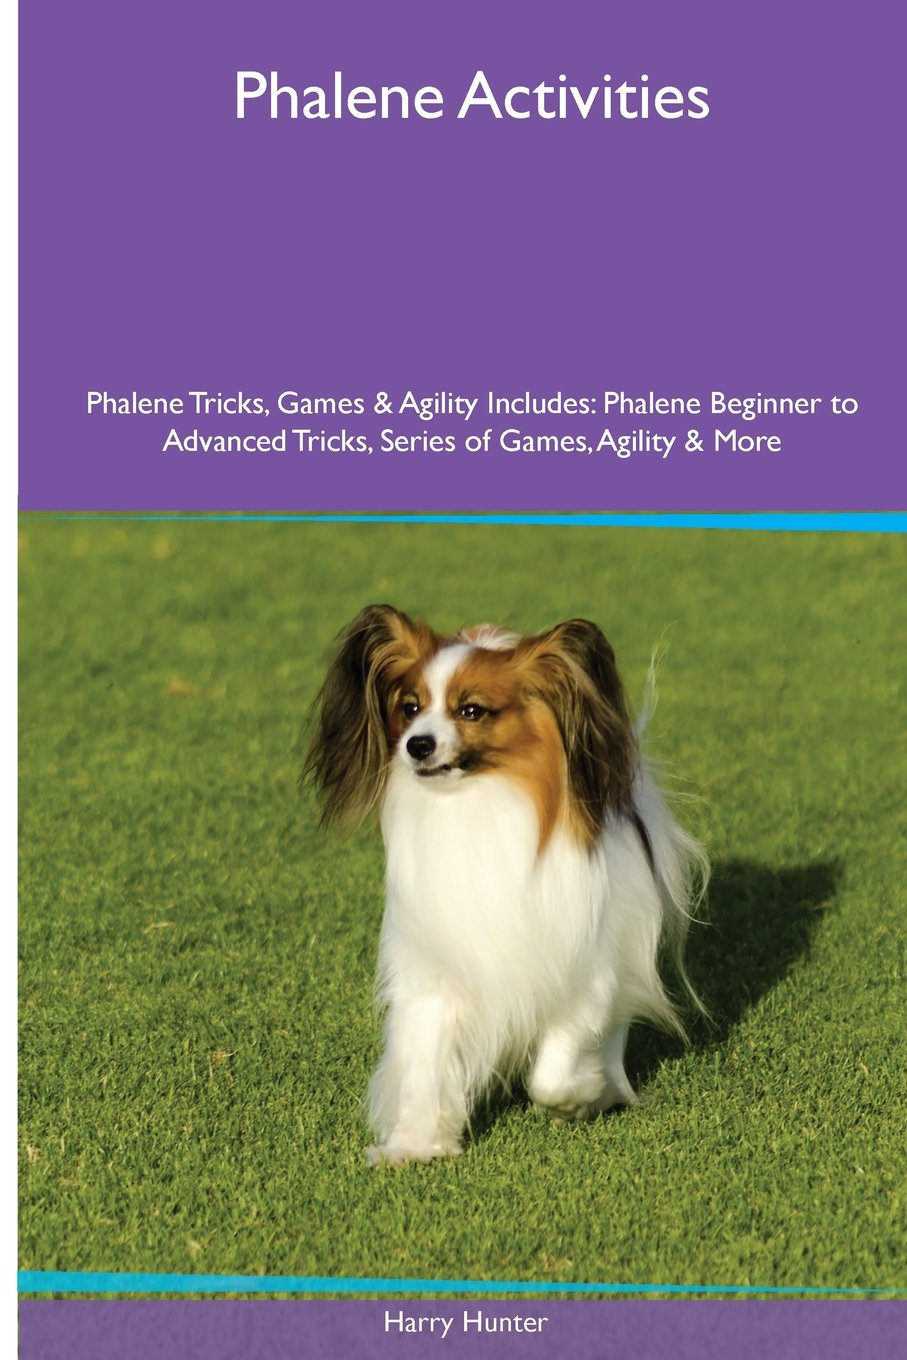 Phalene  Activities Phalene Tricks, Games & Agility. Includes: Phalene Beginner to Advanced Tricks, Series of Games, Agility and More ebook